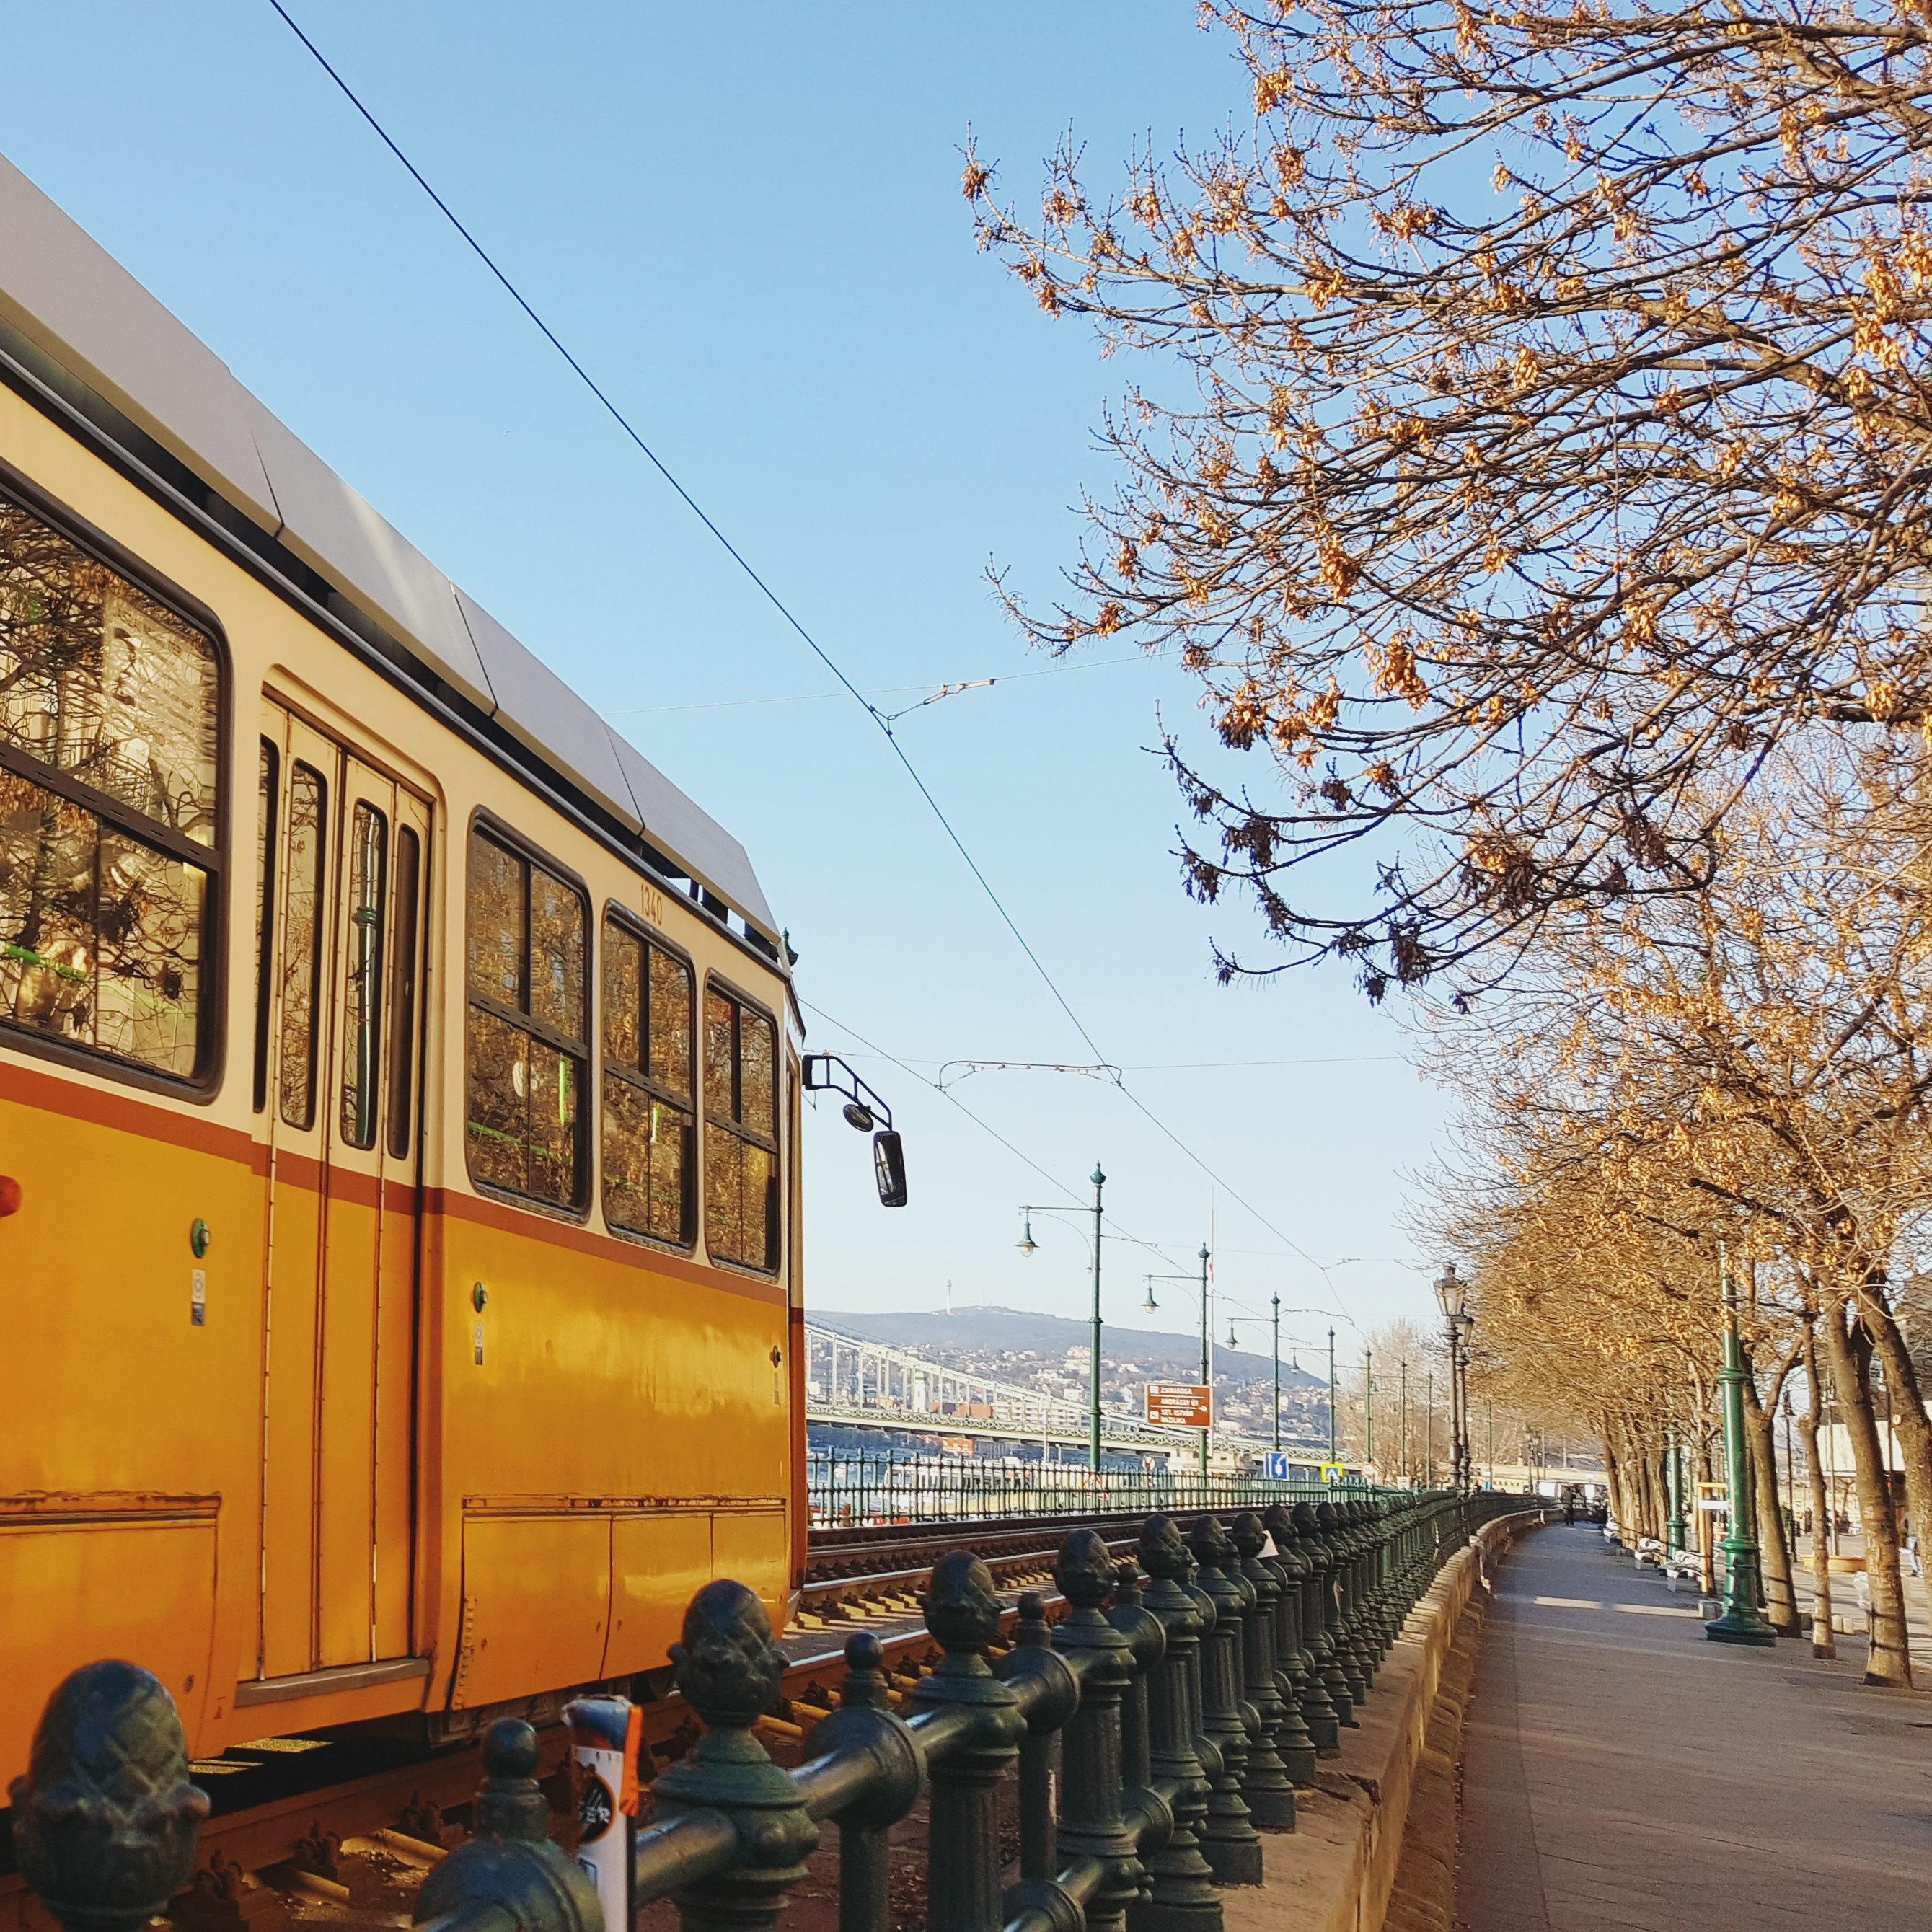 This is how to get from the airport to the city center in Budapest. Need more useful tips and information? Take a look at todoinbudapest.com